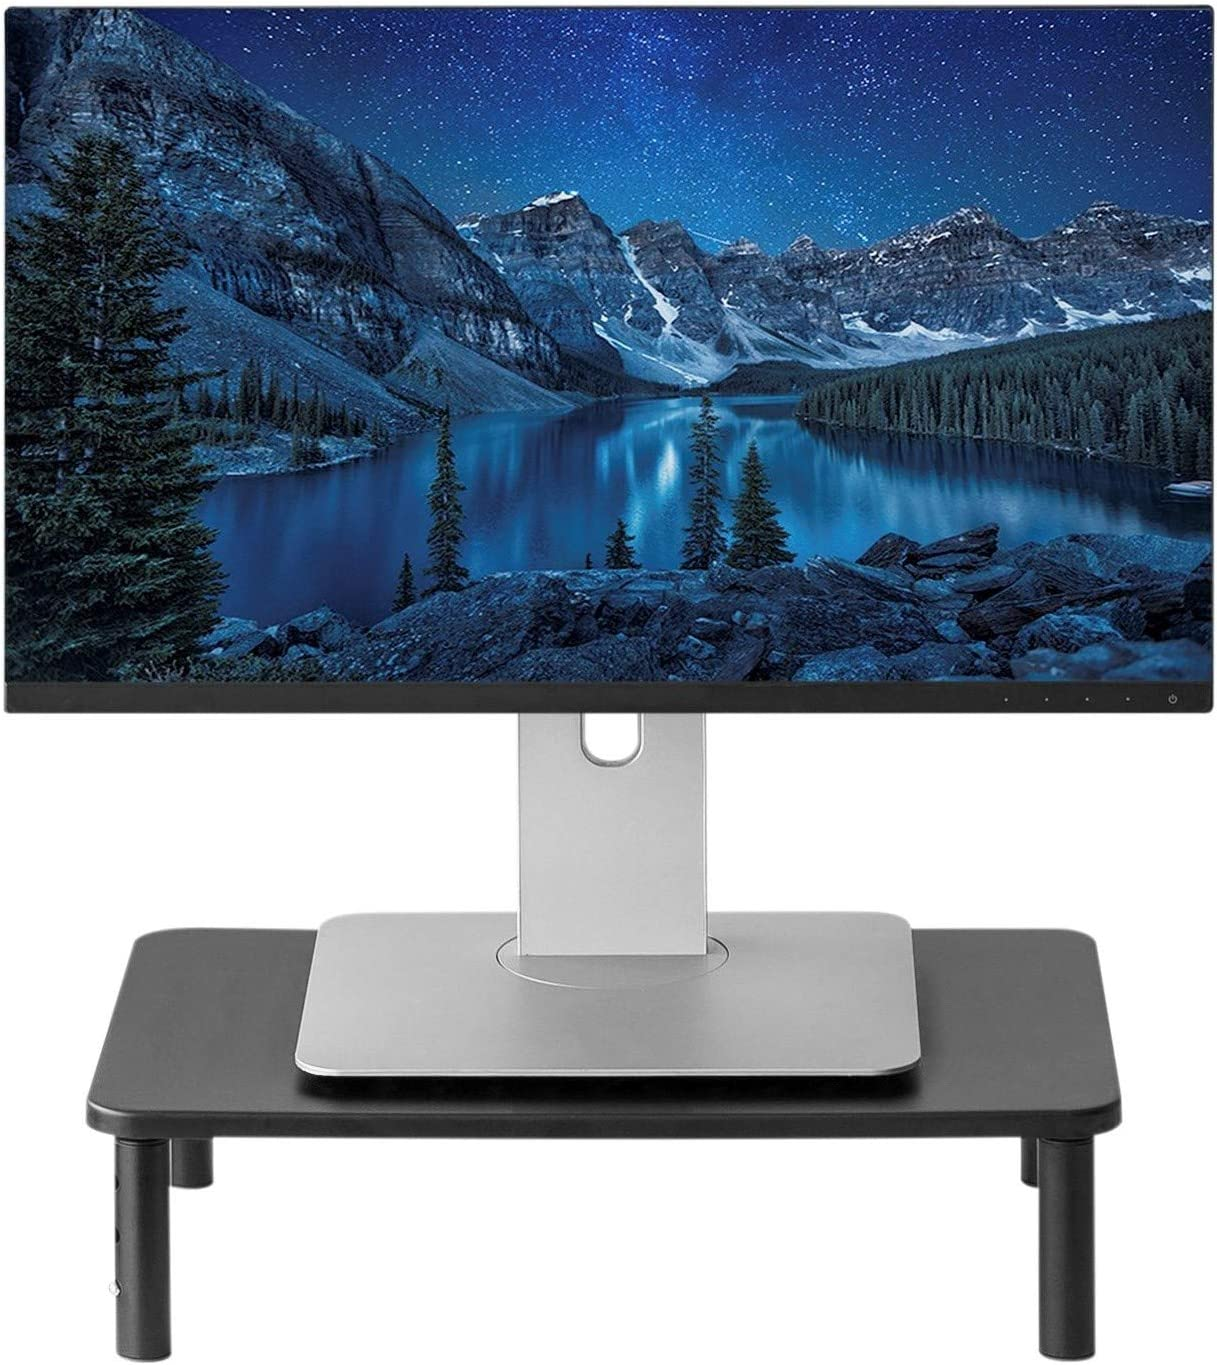 Monitor Stand for Computer, Laptop, Desktop, iMac or Printer - Metal Monitor Riser 14.5 x 9.5 Inch Platform and Adjustable 4 to 5.5 Inch Riser Height - Monitor Stand Organizer for Home or Office Use.